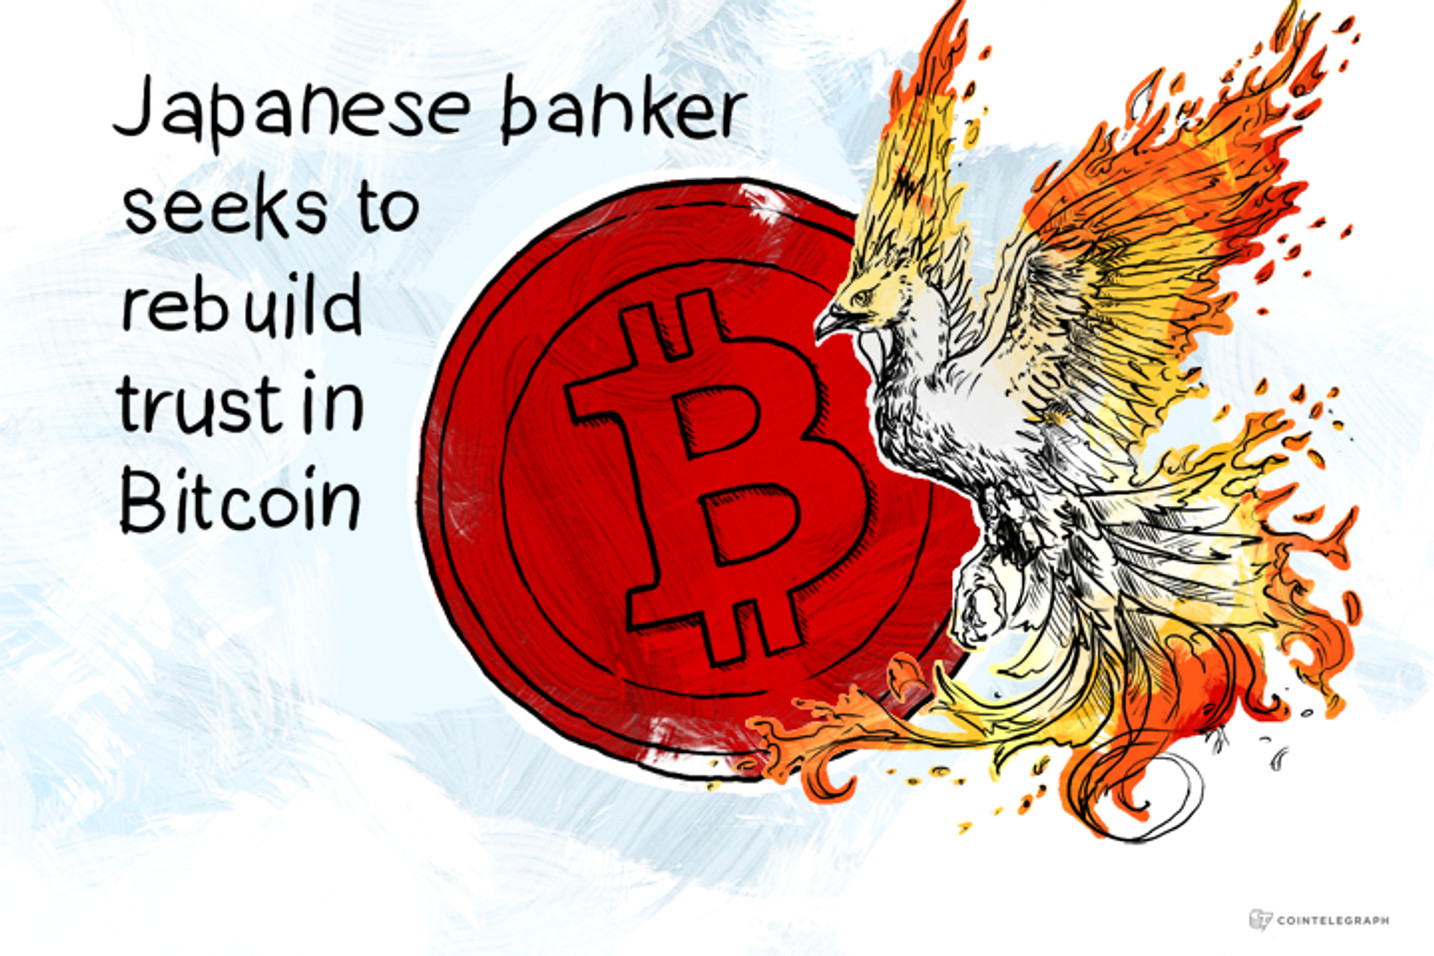 Japanese banker seeks to rebuild trust in Bitcoin